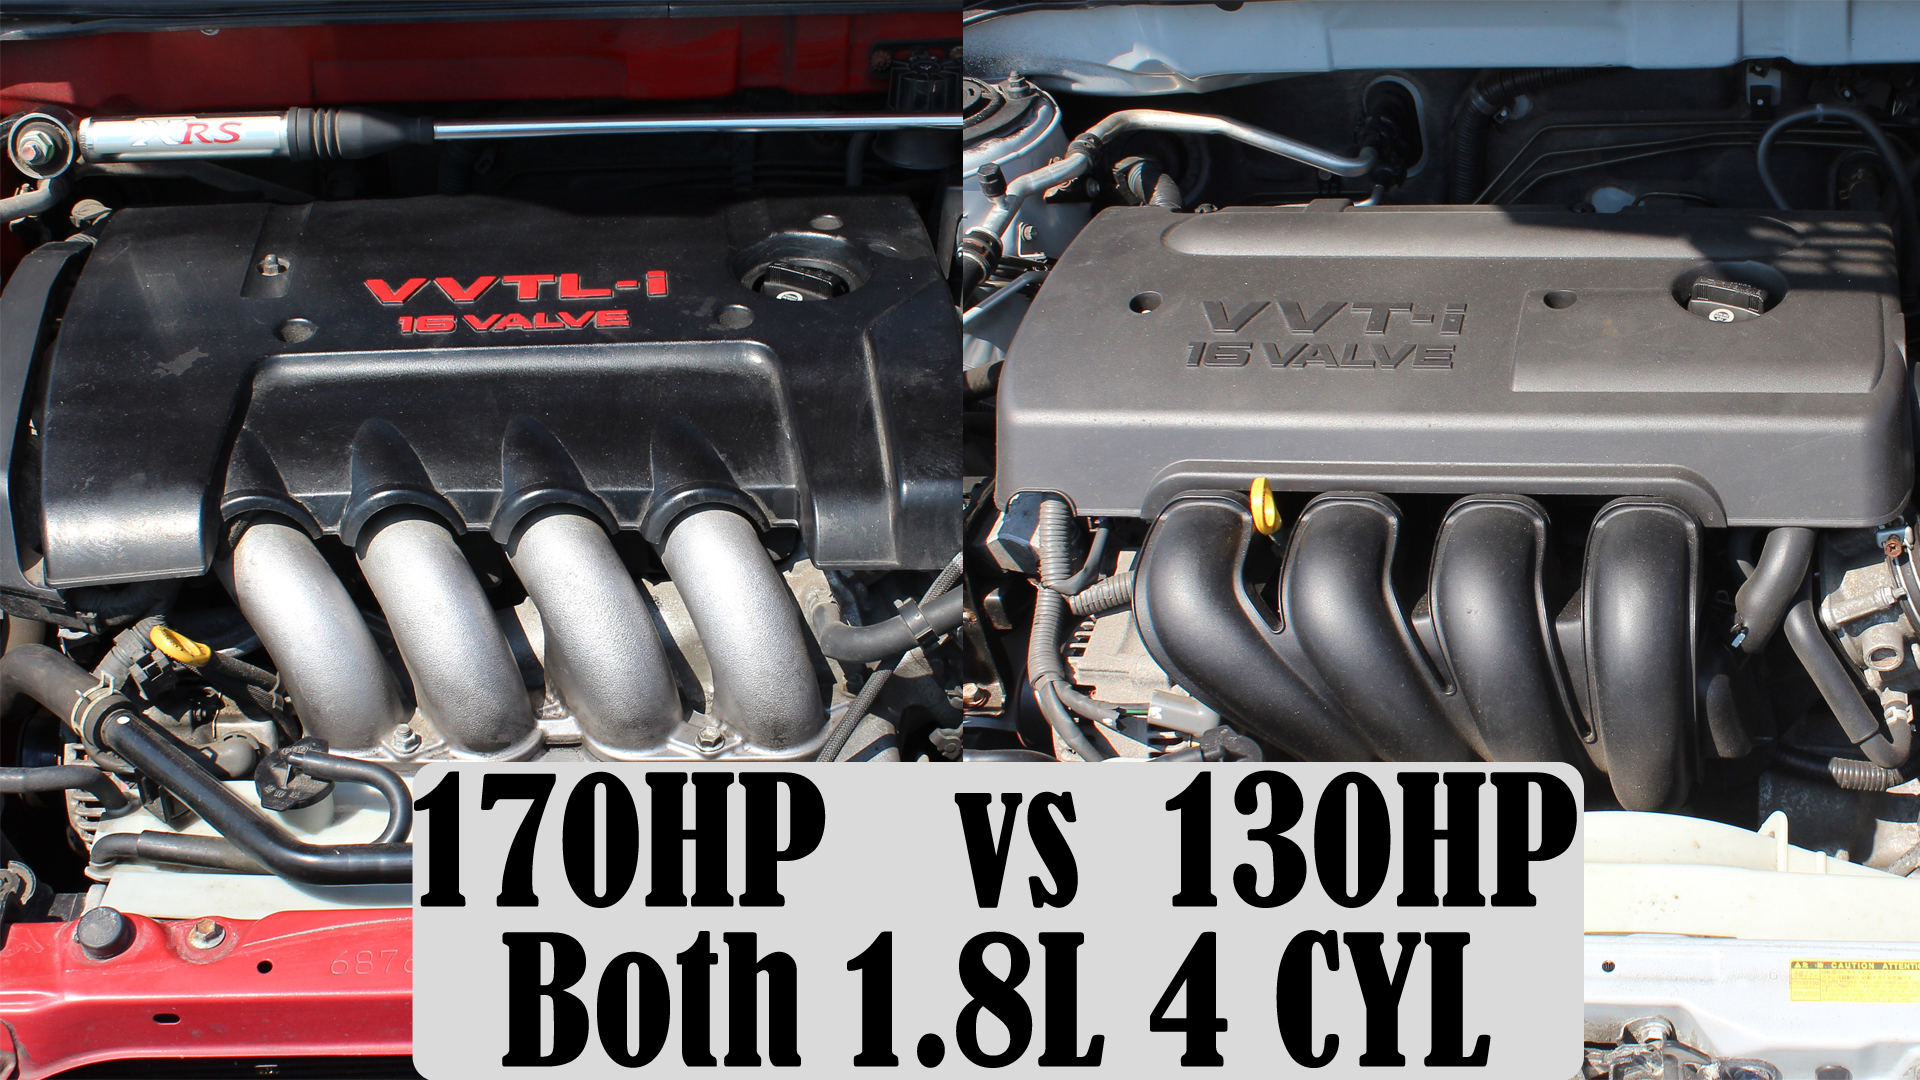 Comparing 2 Toyota Engines that have the same displacement but different power outputs.